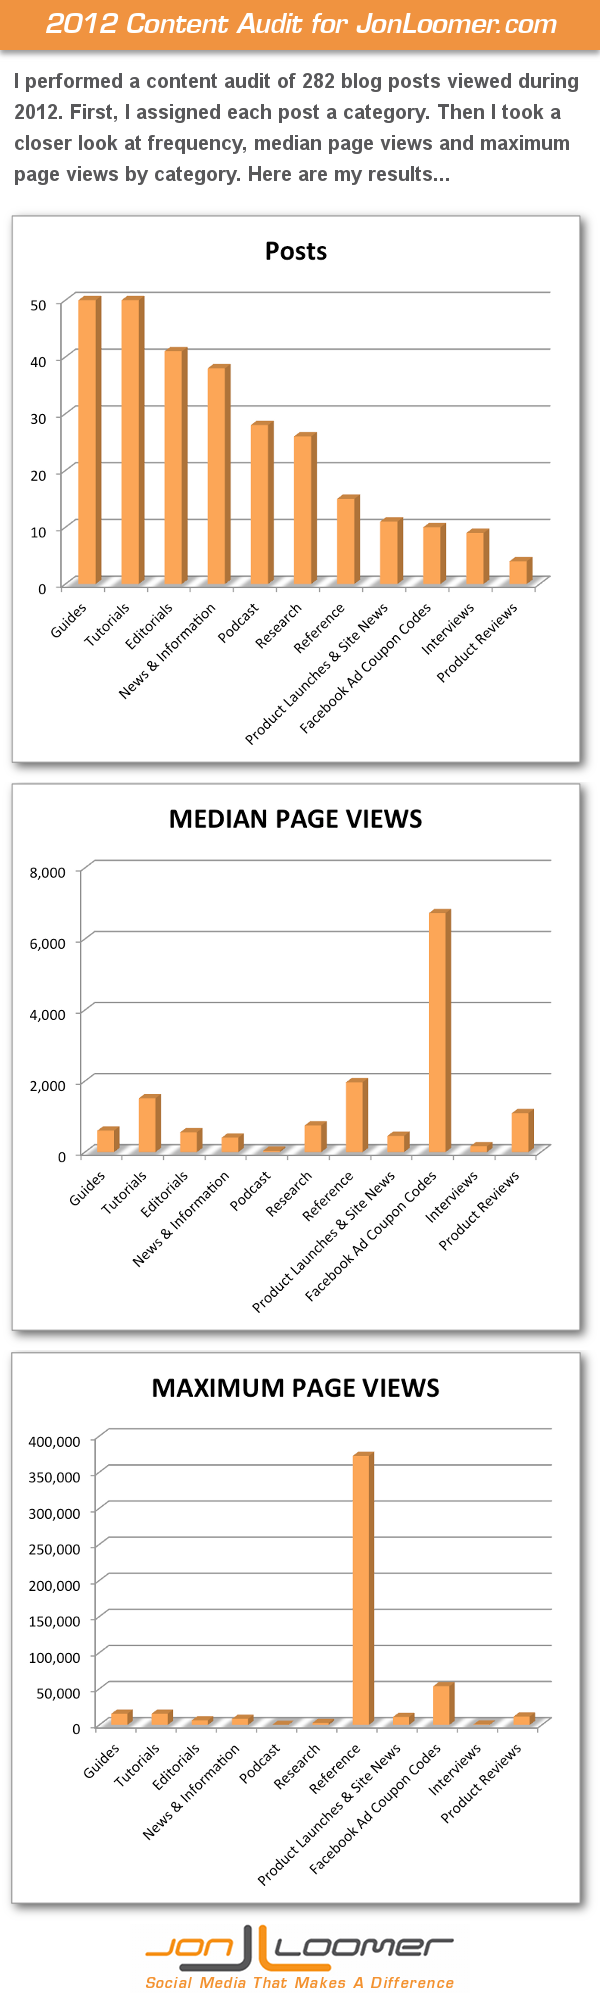 2012 content audit jonloomer Year in Review: Perform a Content Audit [Example]